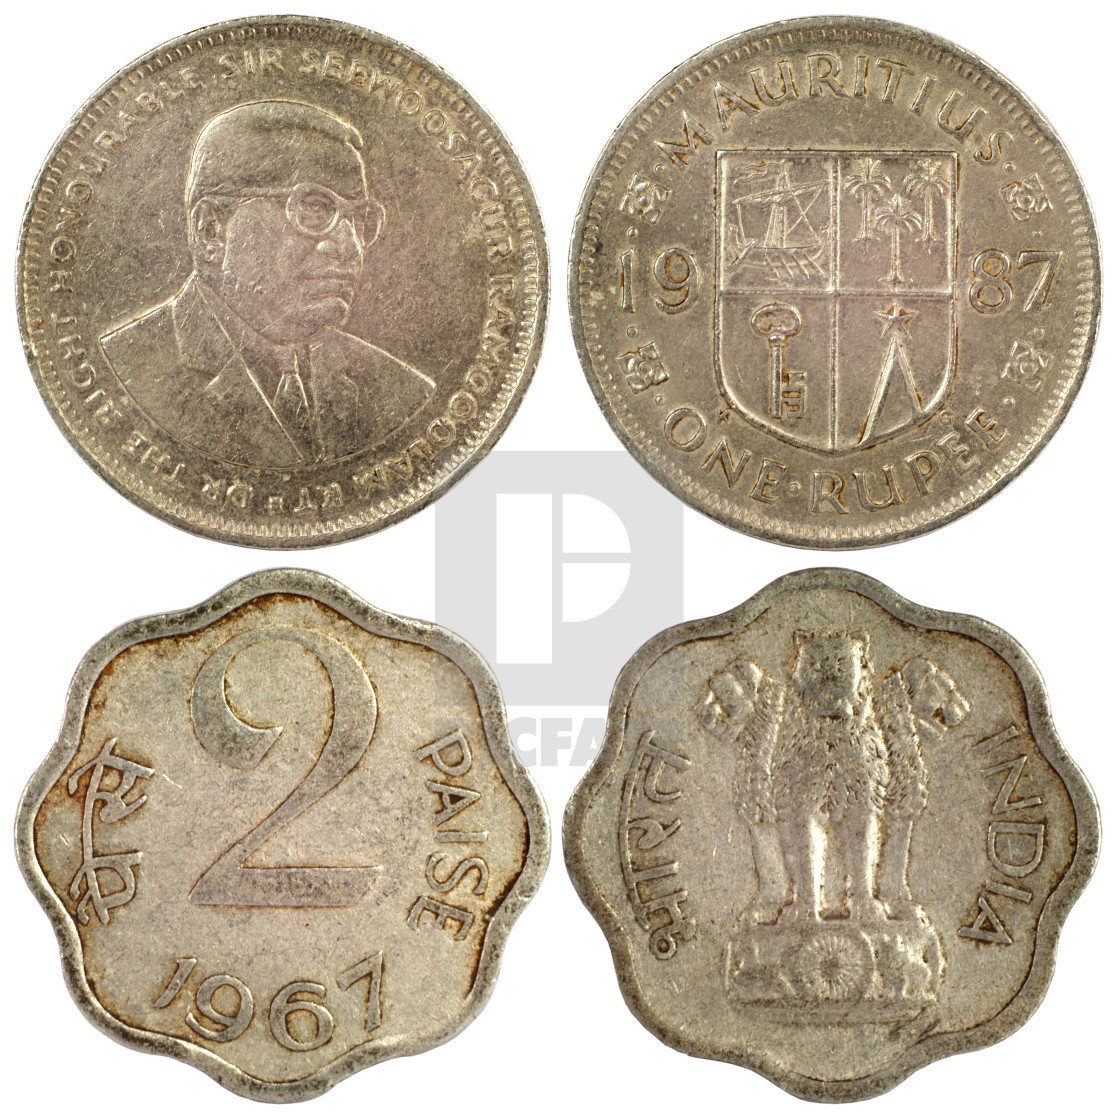 old rare coins of india - License, download or print for